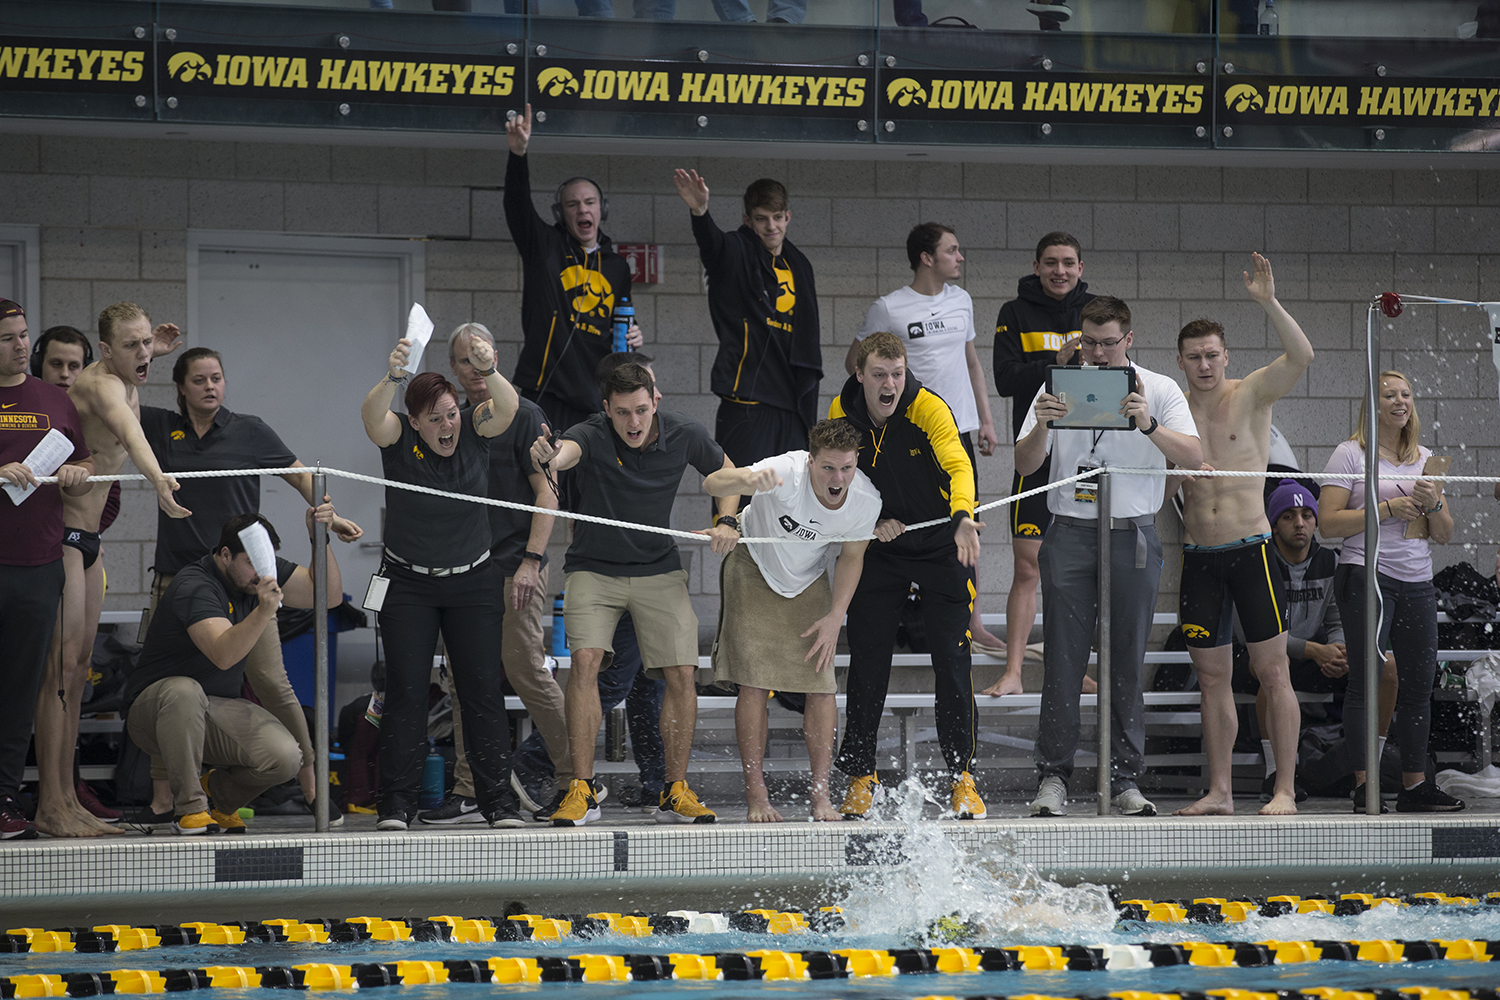 Iowa+swimmers+cheer+on+their+teammates+during+preliminary+rounds+of+the+men%27s+Big+10+Swimming+Championships+on+Saturday%2C+March+3%2C+2019.